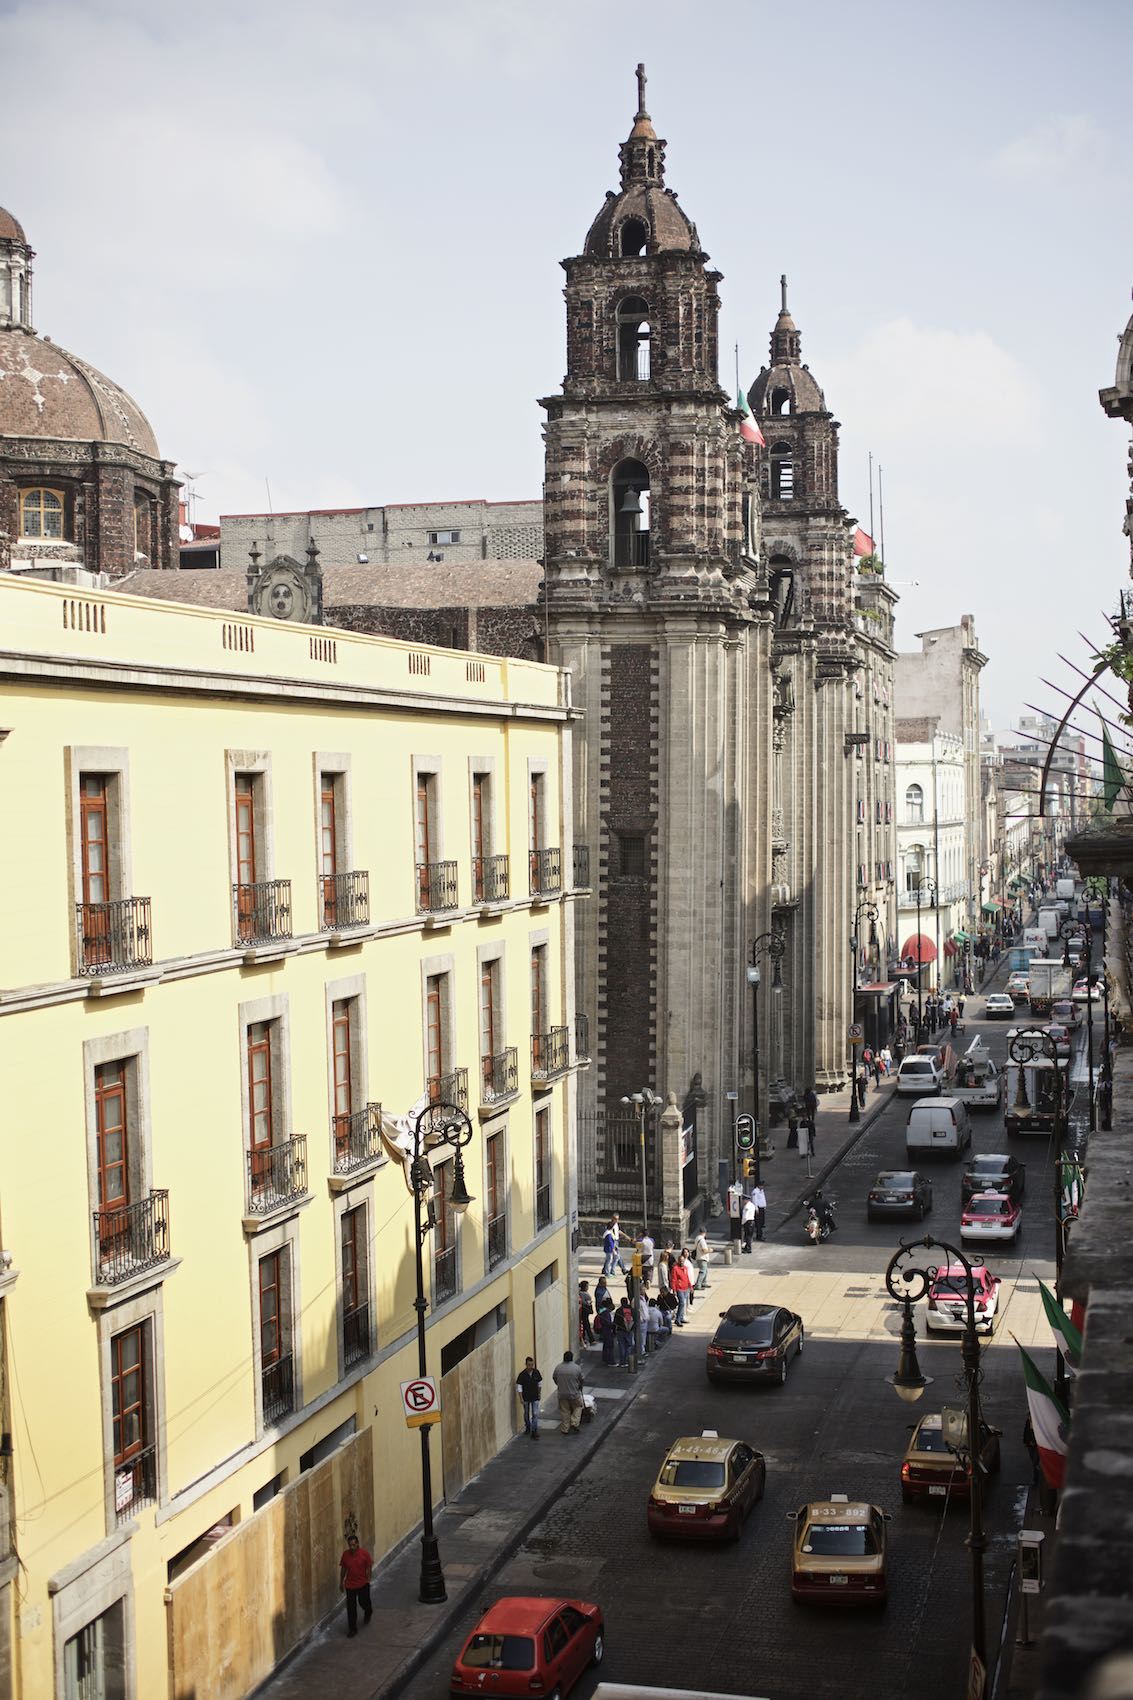 Jody Horton Photography - Mexico City street scene with historic architecture.